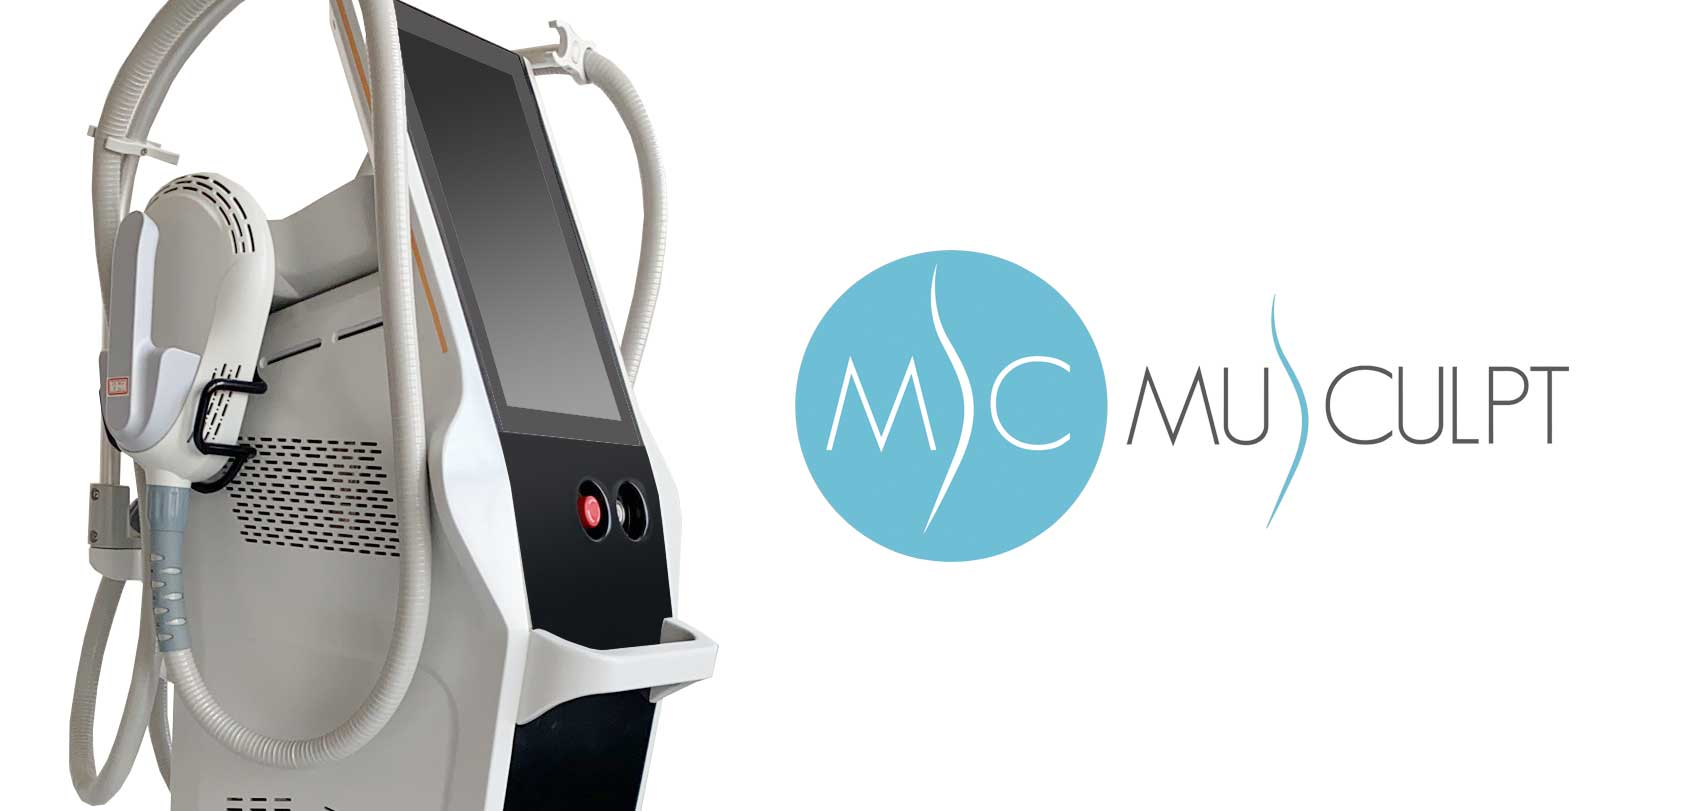 electromagnetismo musculpt liderbeauty